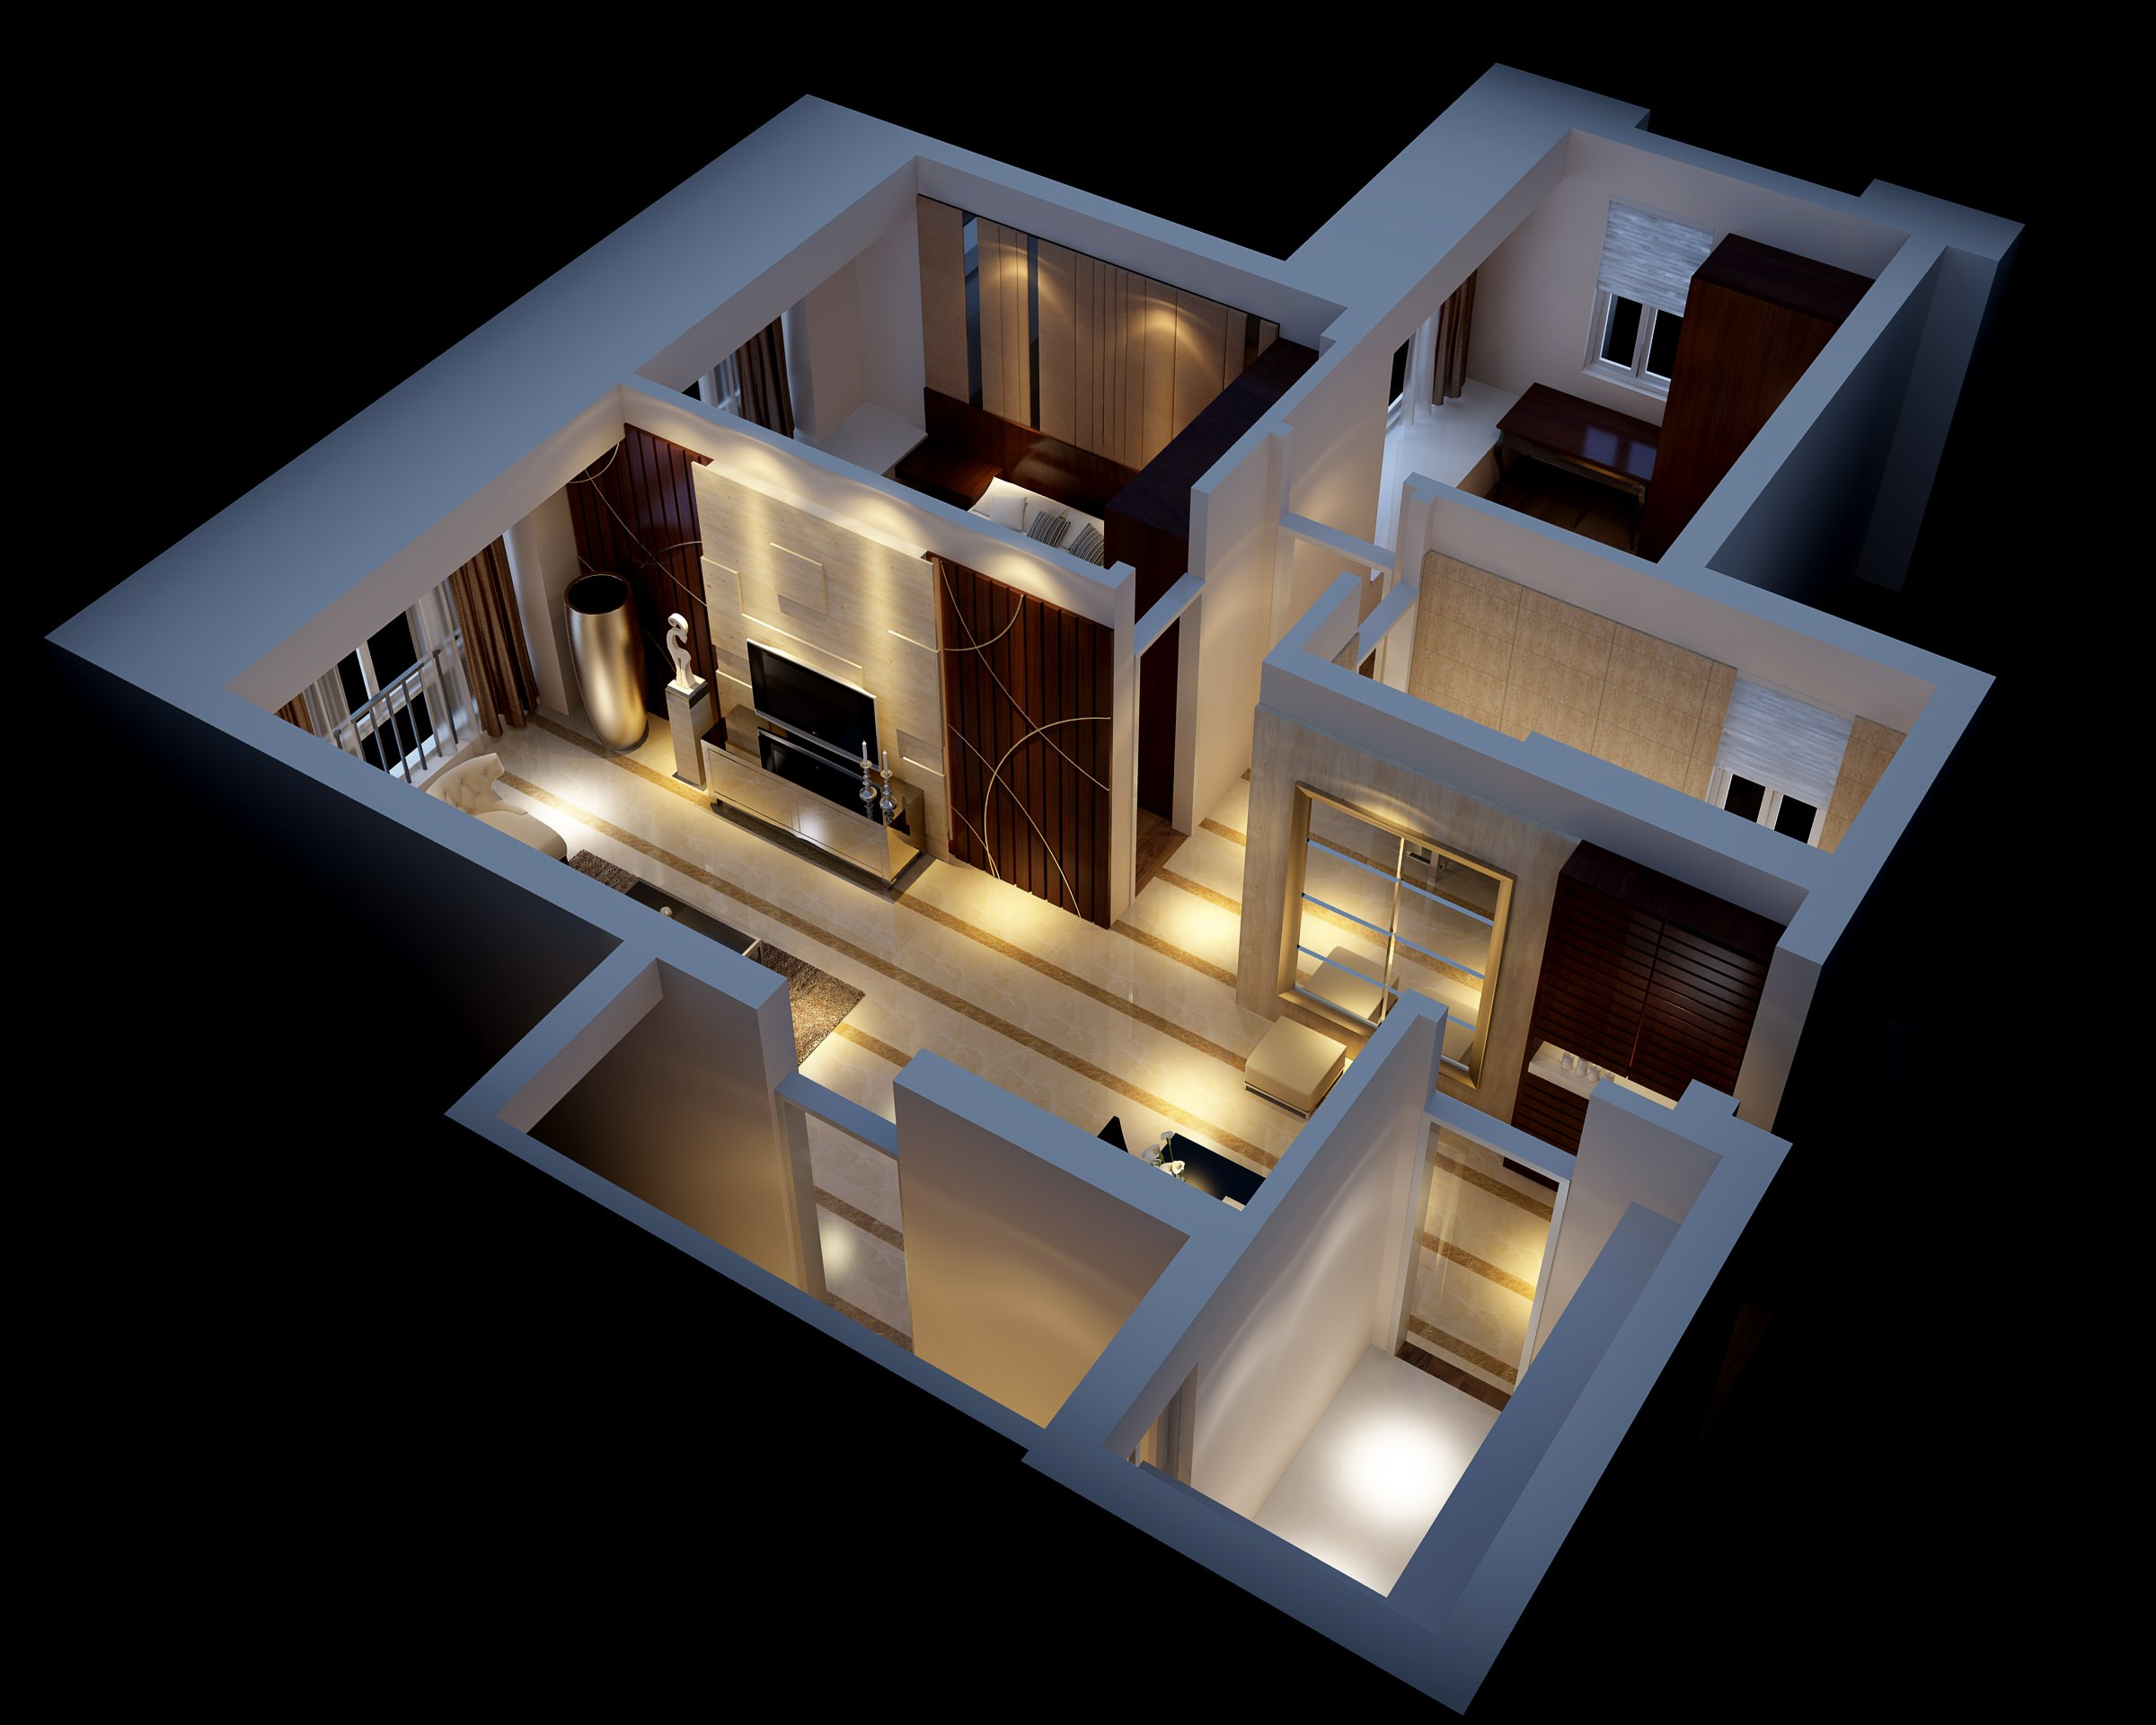 Modern house interior fully furnished 3d model max New model contemporary house